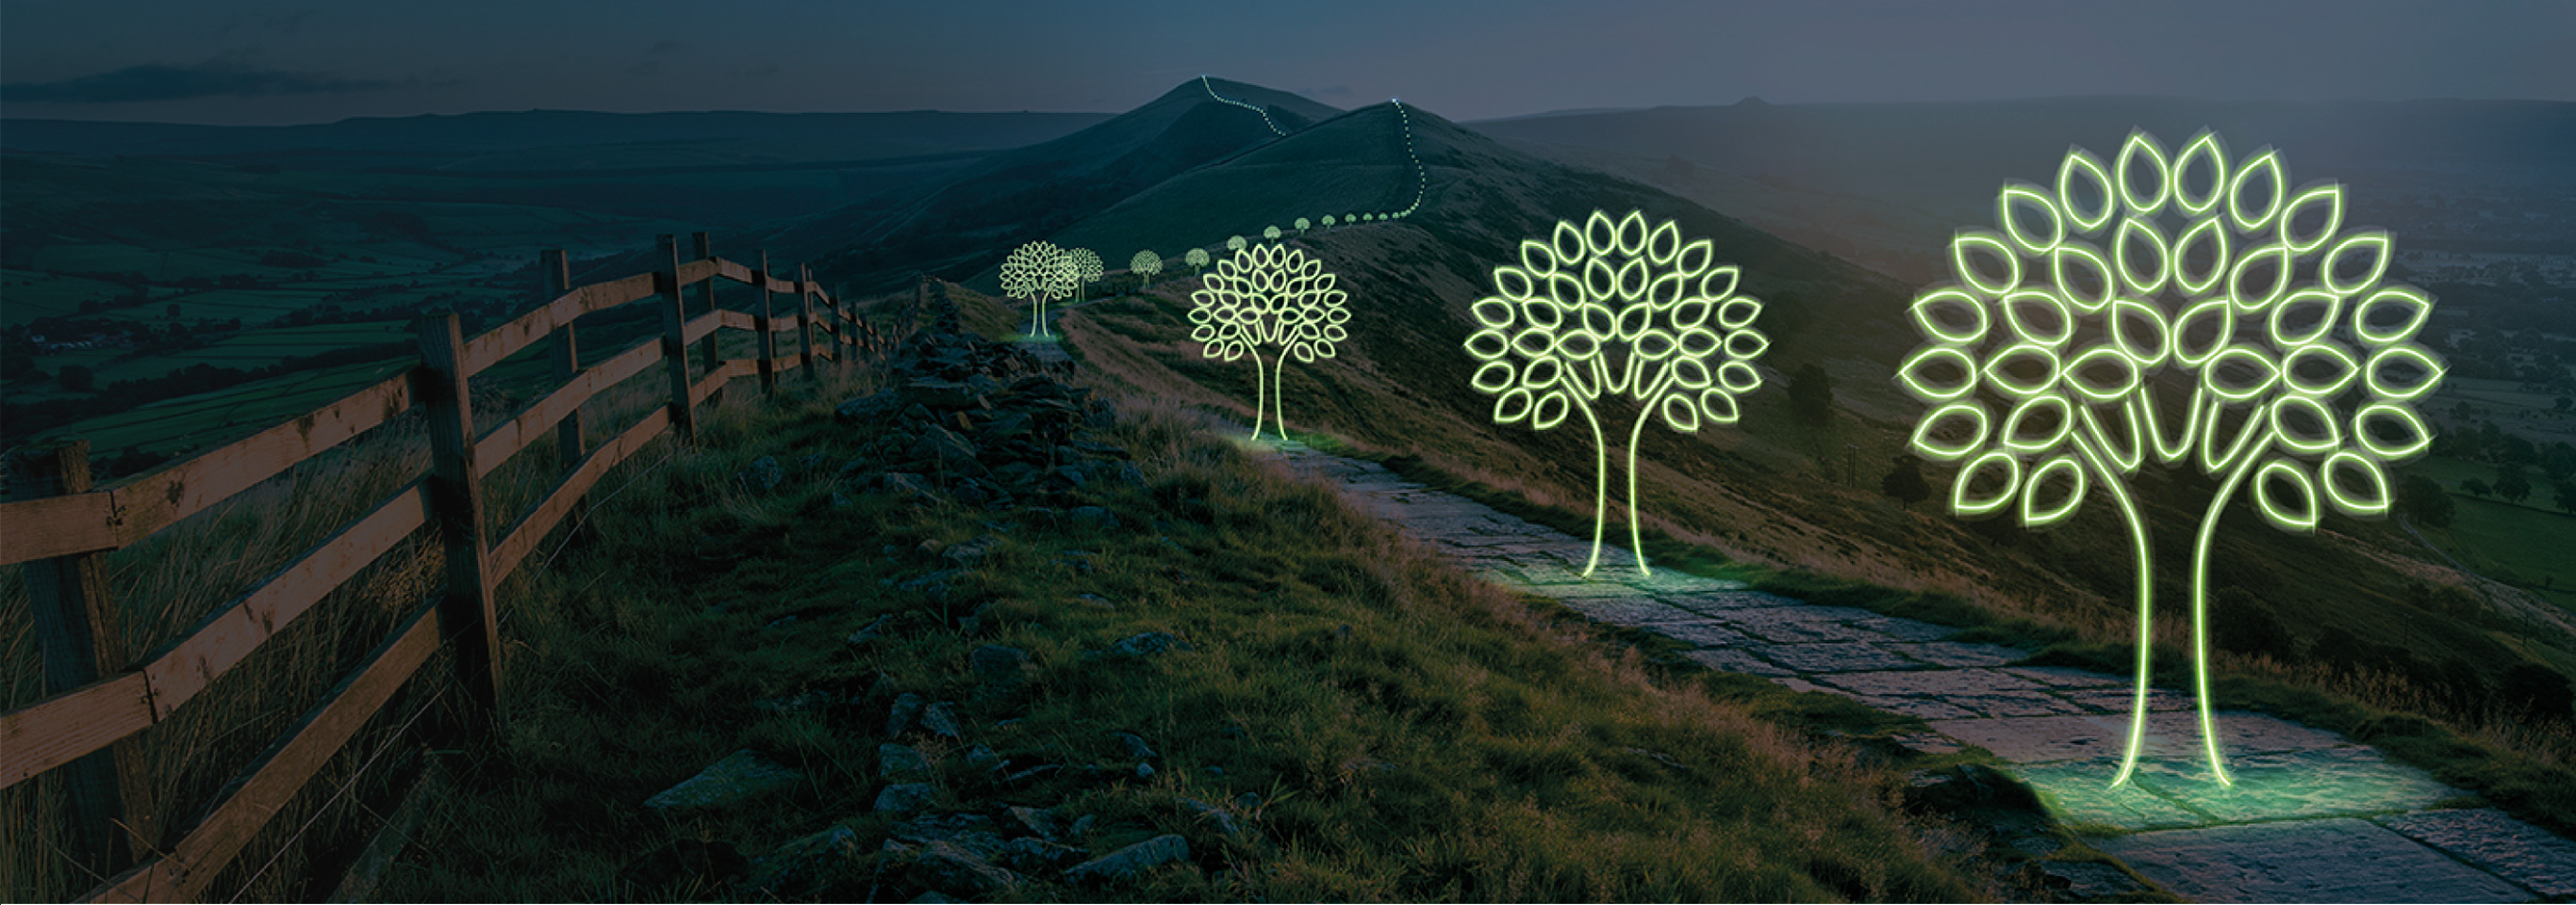 Lighting the way in responsible investing for over 30 years